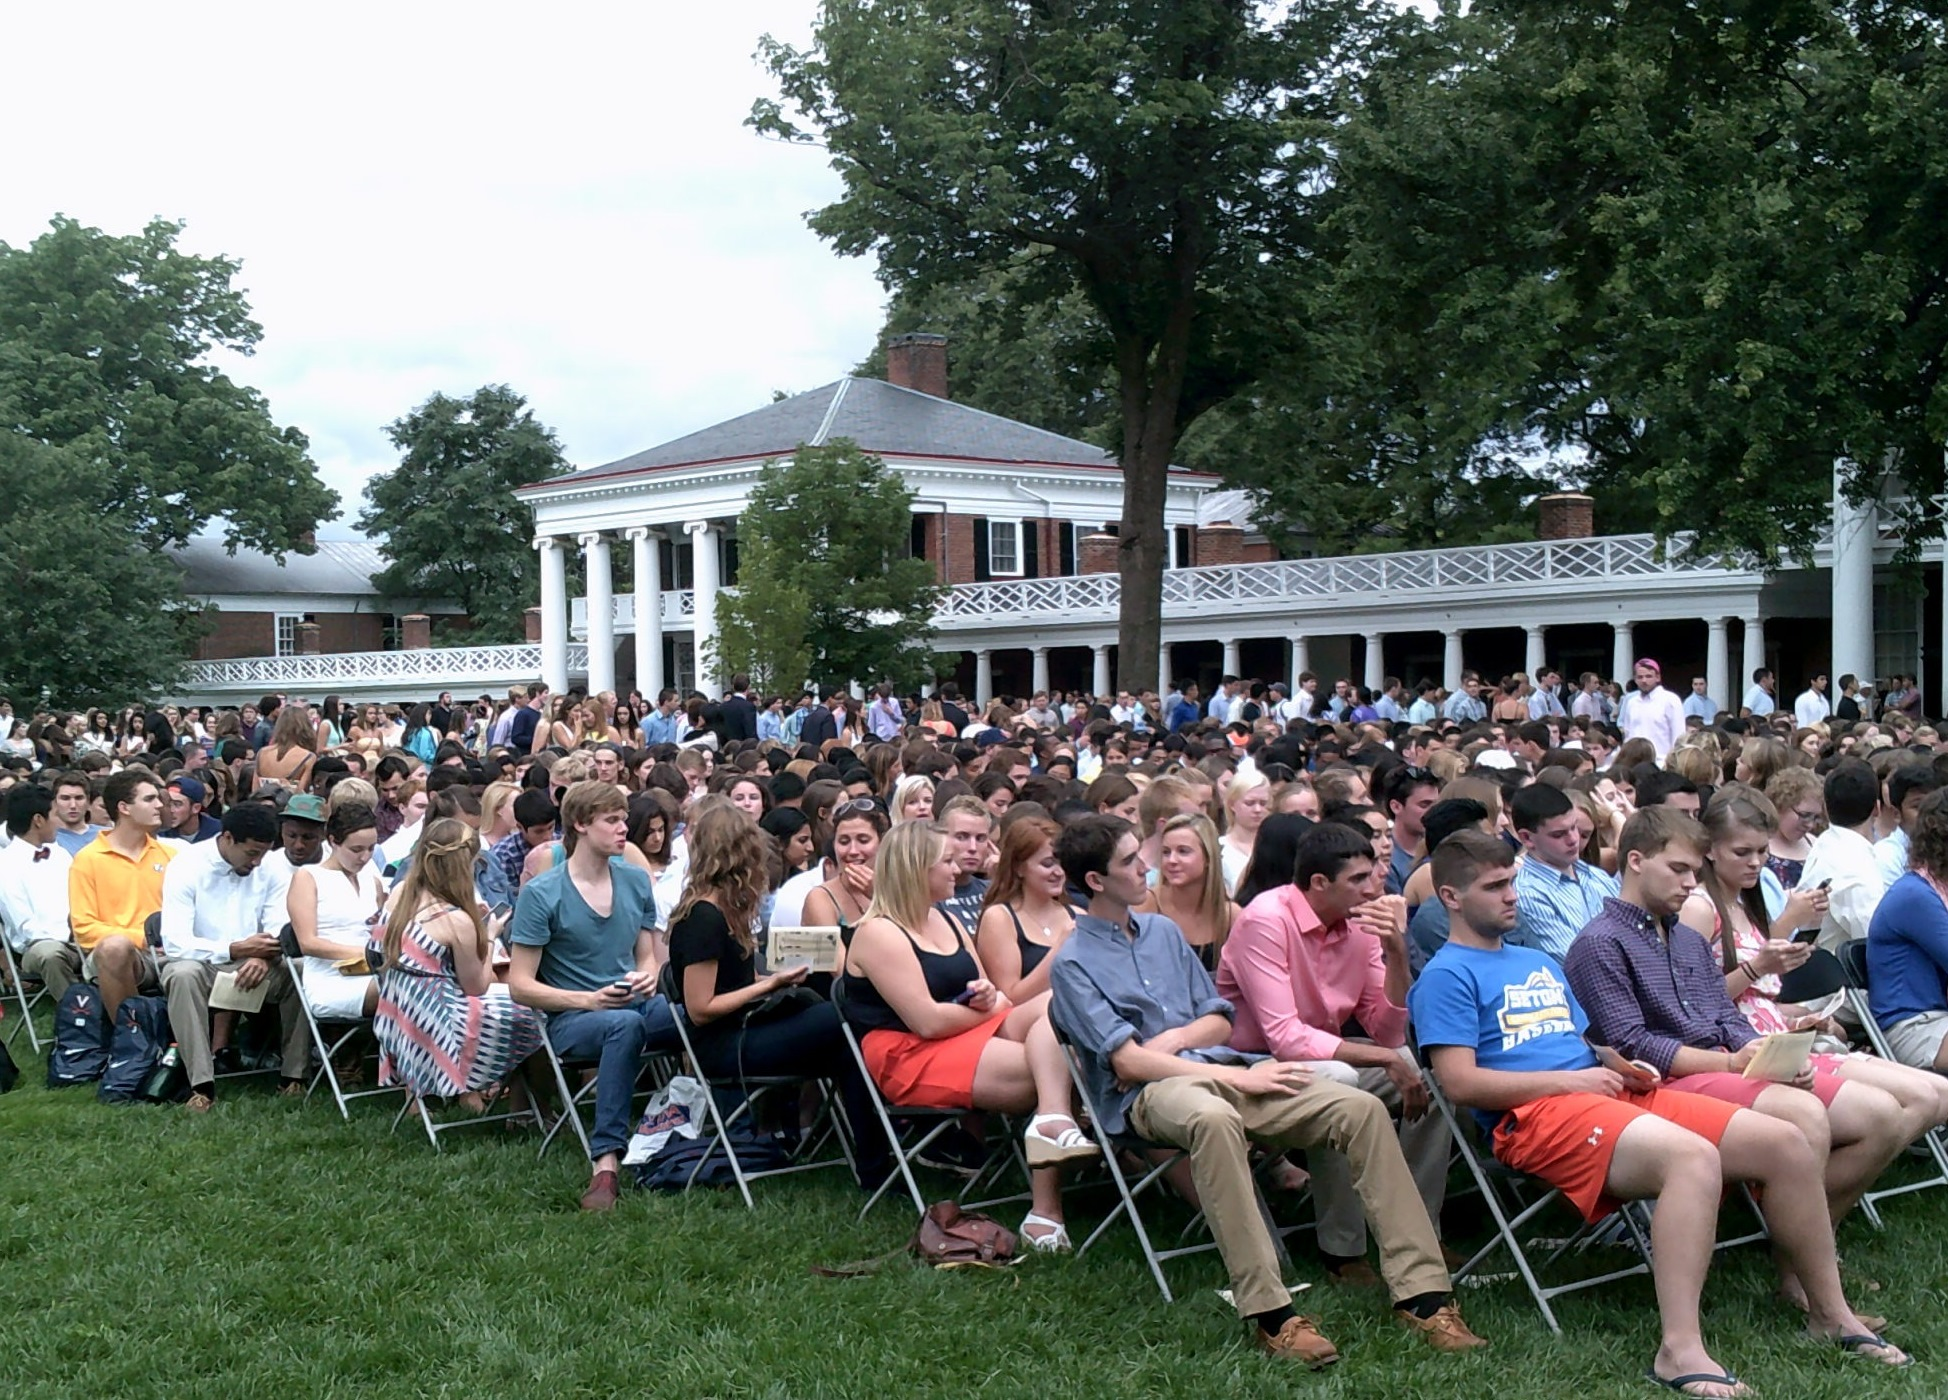 UVA Welcomes Class Of 2018 During Lawn Ceremony